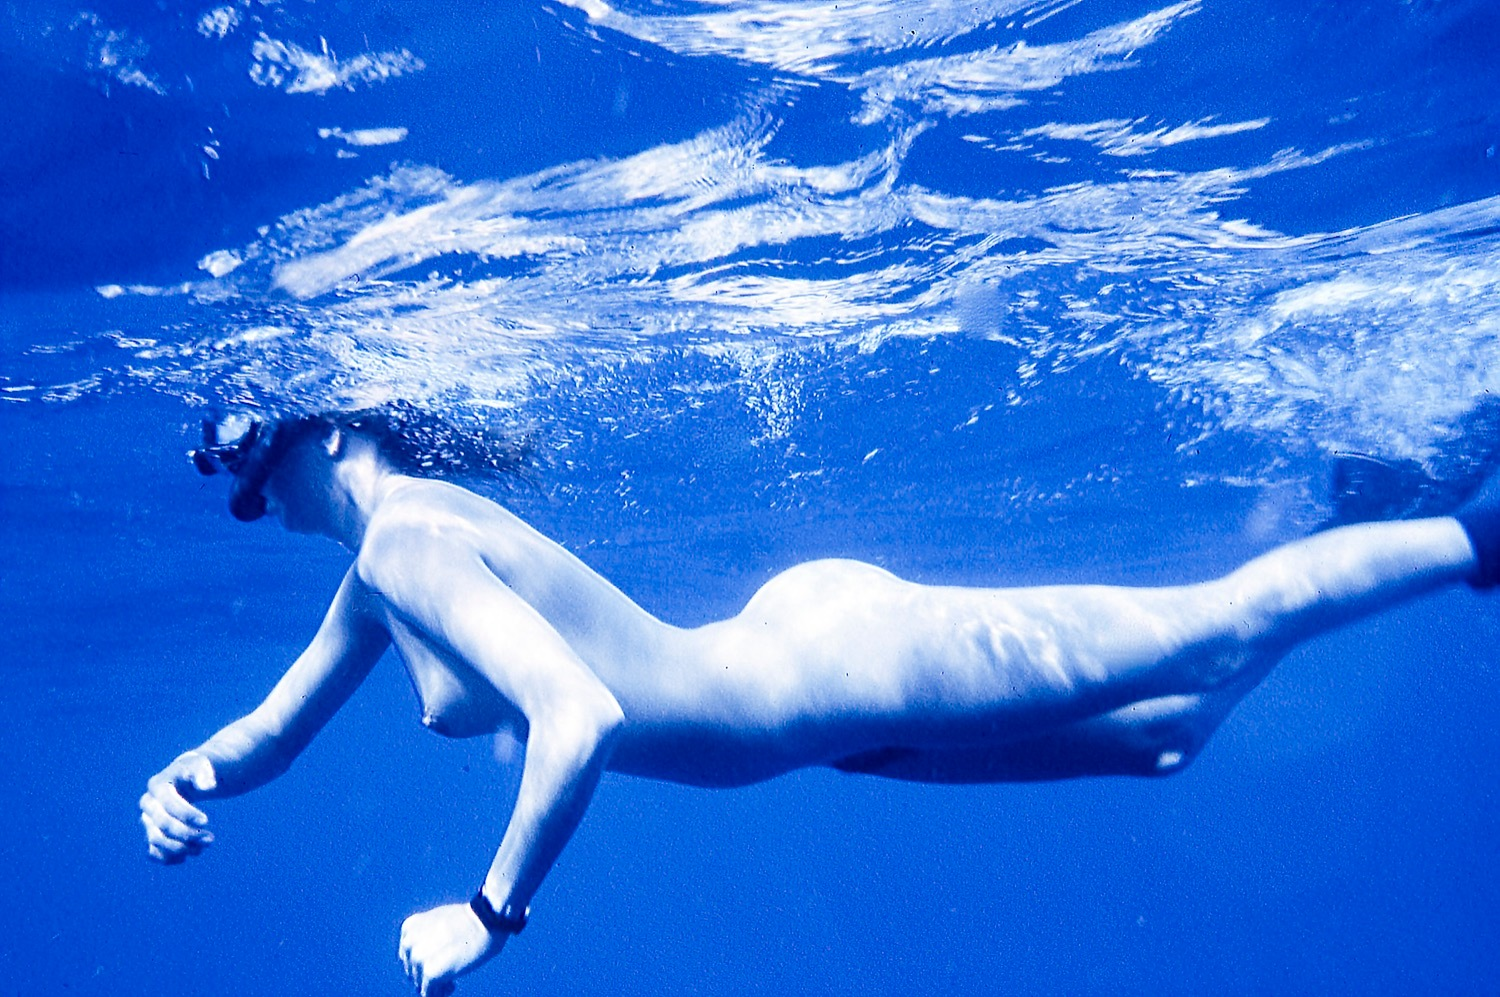 Nude in blue by Robert Hayes